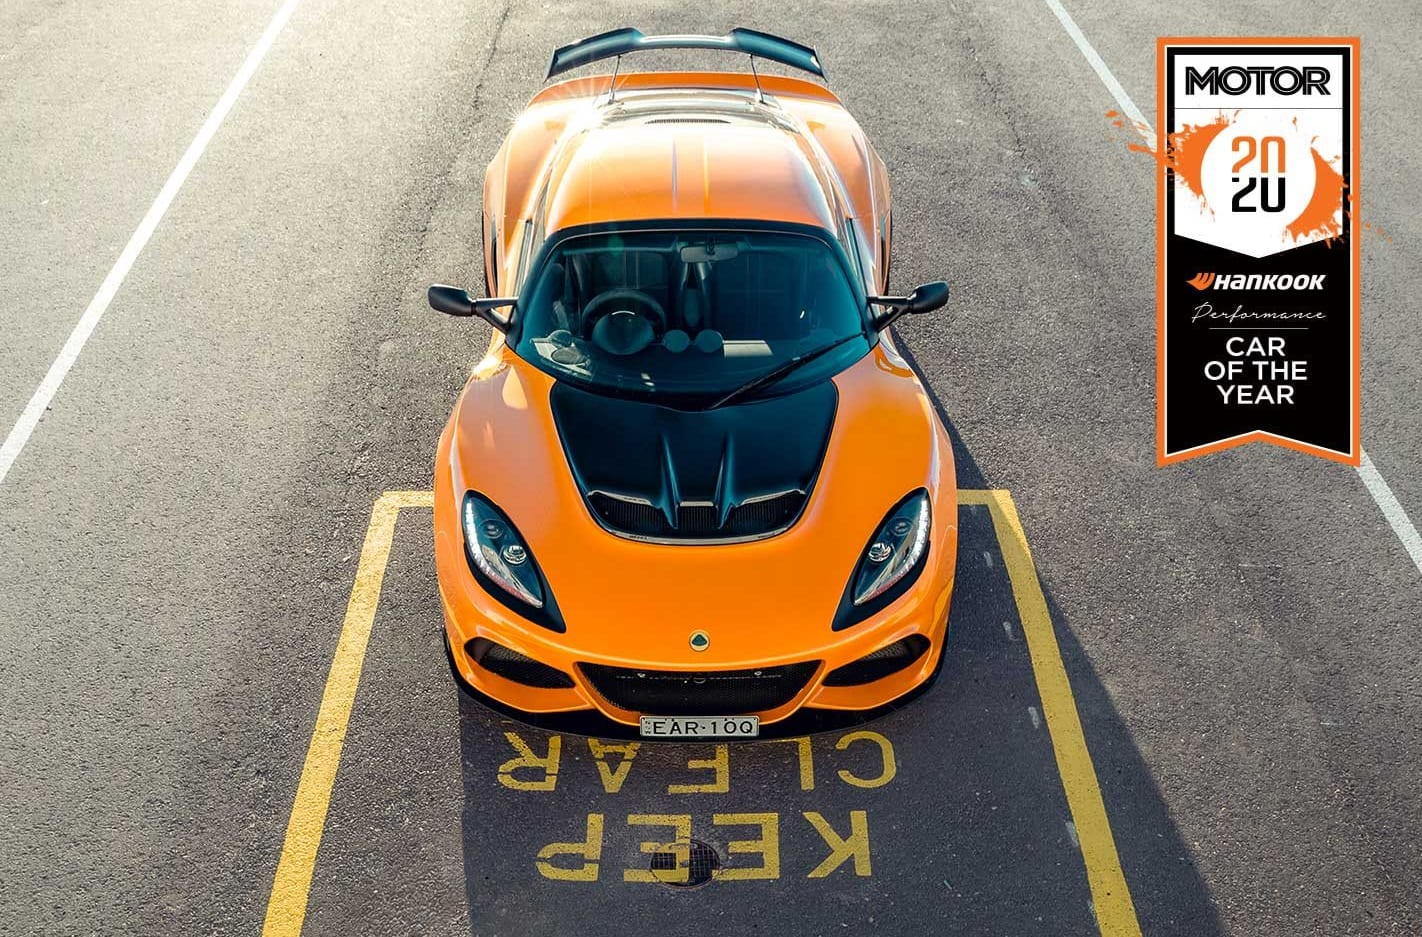 Lotus Exige Sport 410 Performance Car of the Year 2020 results